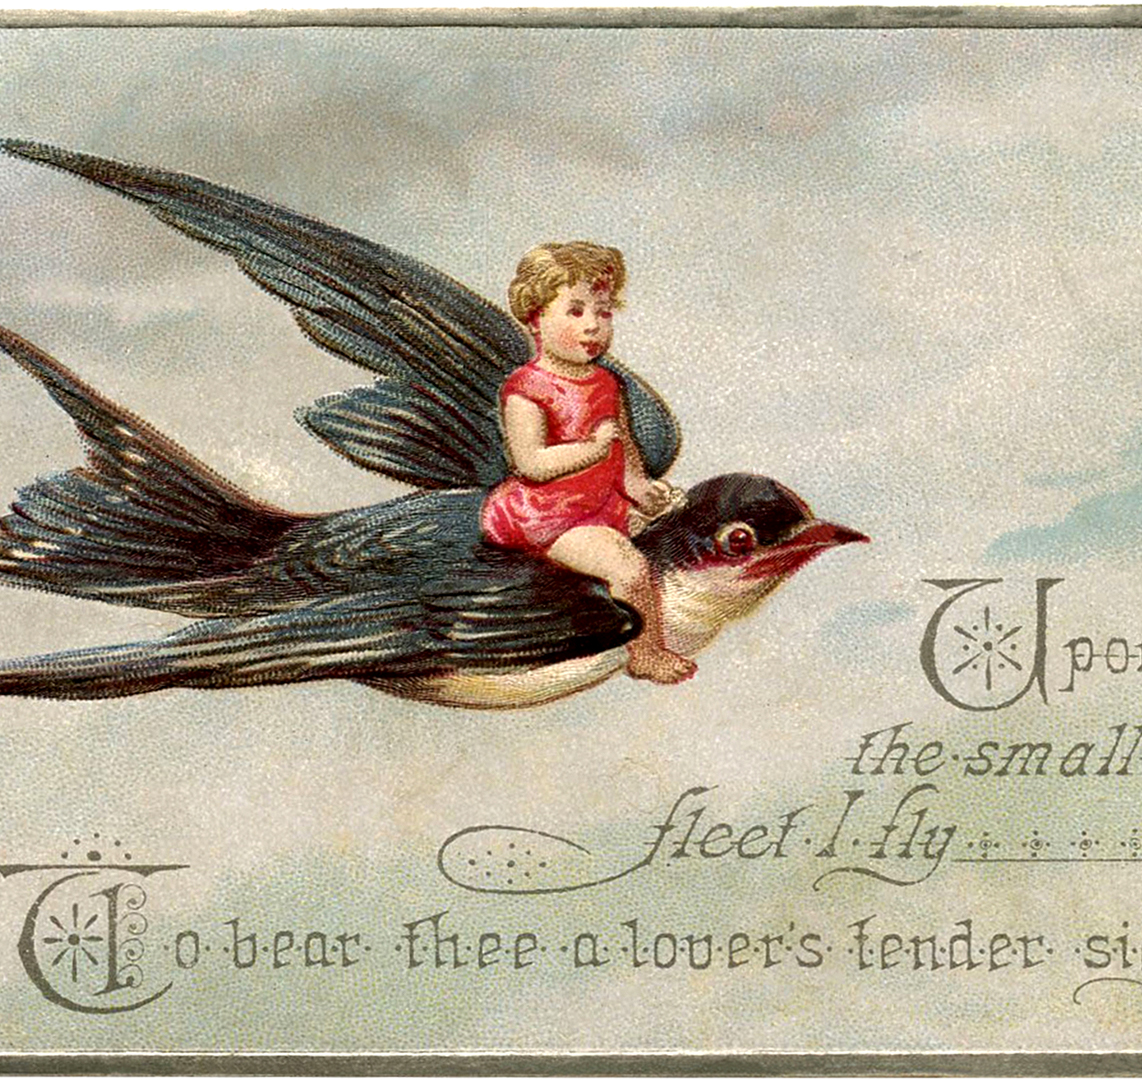 Vintage Flying Bird And Child Image